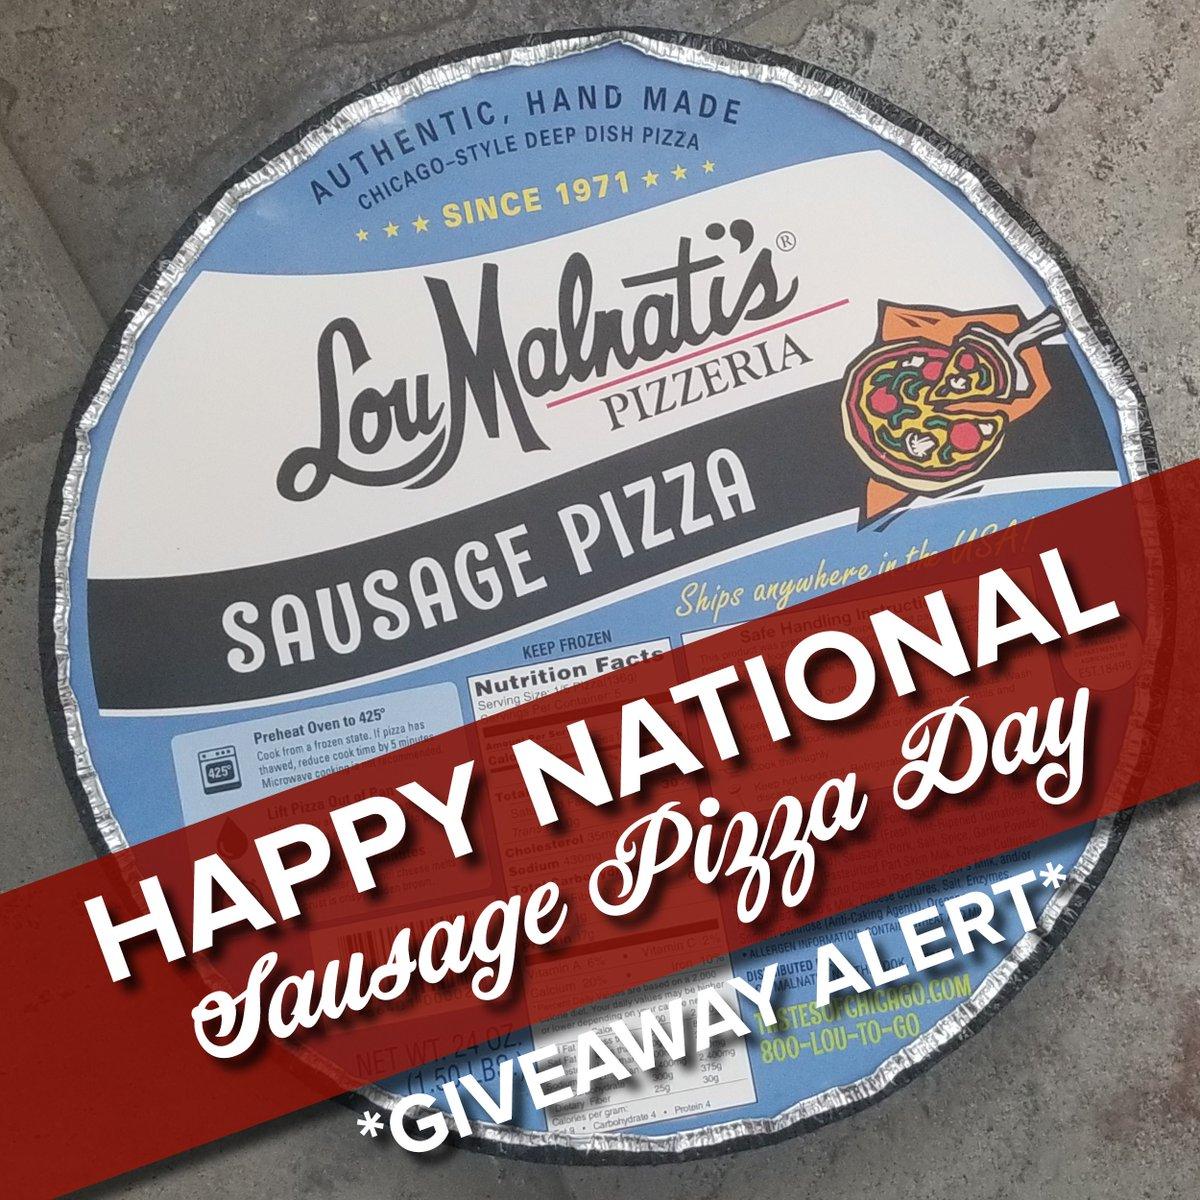 We&#39;re celebrating #NationalSausagePizzaDay by giving away a $25 gift card. To enter, follow us and reply to this tweet by 11:59pm central time today. One winner will be randomly chosen tomorrow from entries on FB, TW, and IG, so enter on all three for a better chance to win. <br>http://pic.twitter.com/47elUuBzDl